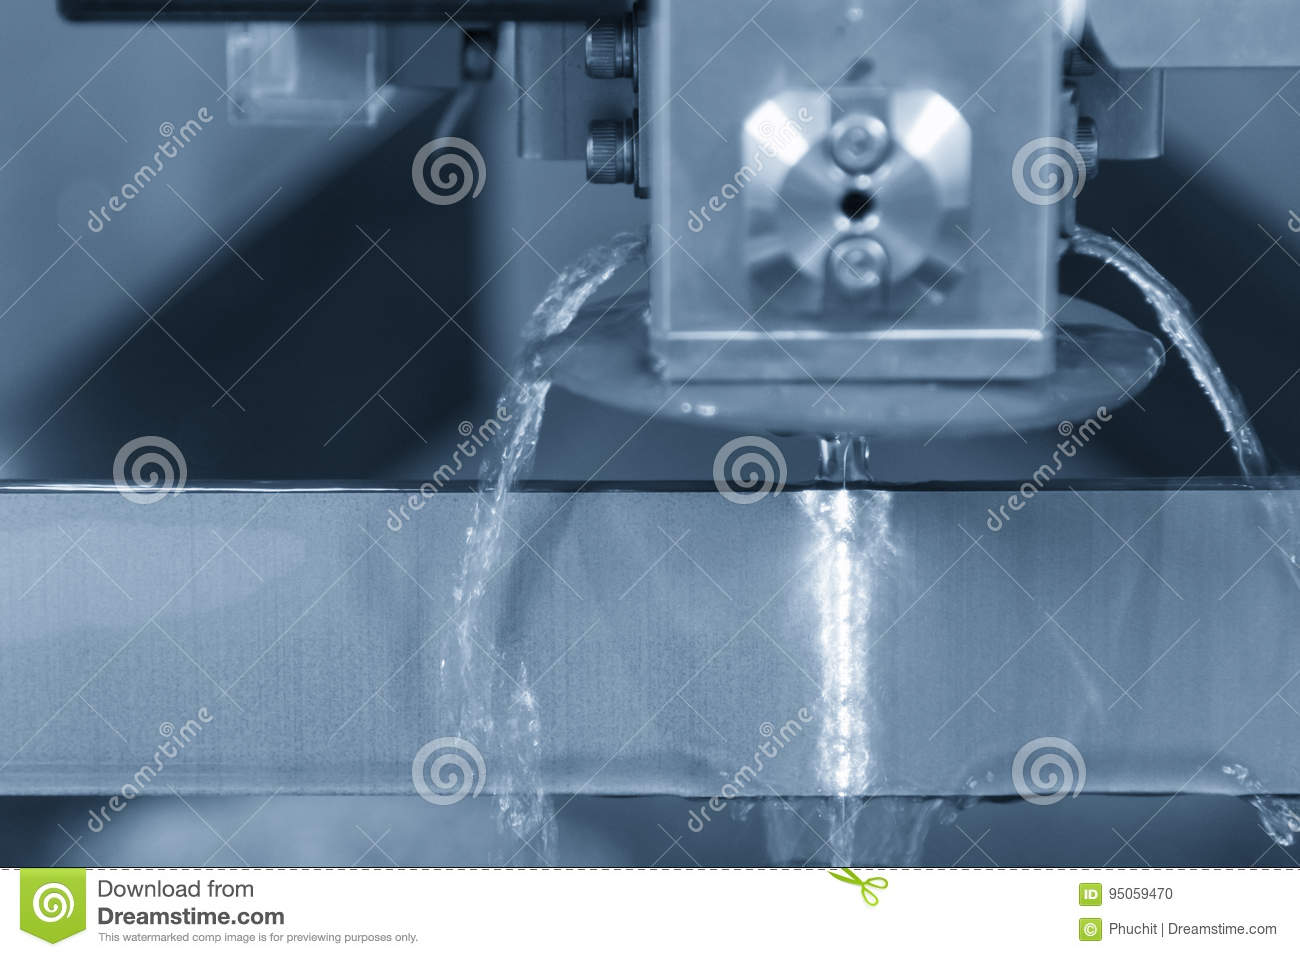 Close-up Of The Wire - EDM CNC Machine Stock Photo - Image of ...